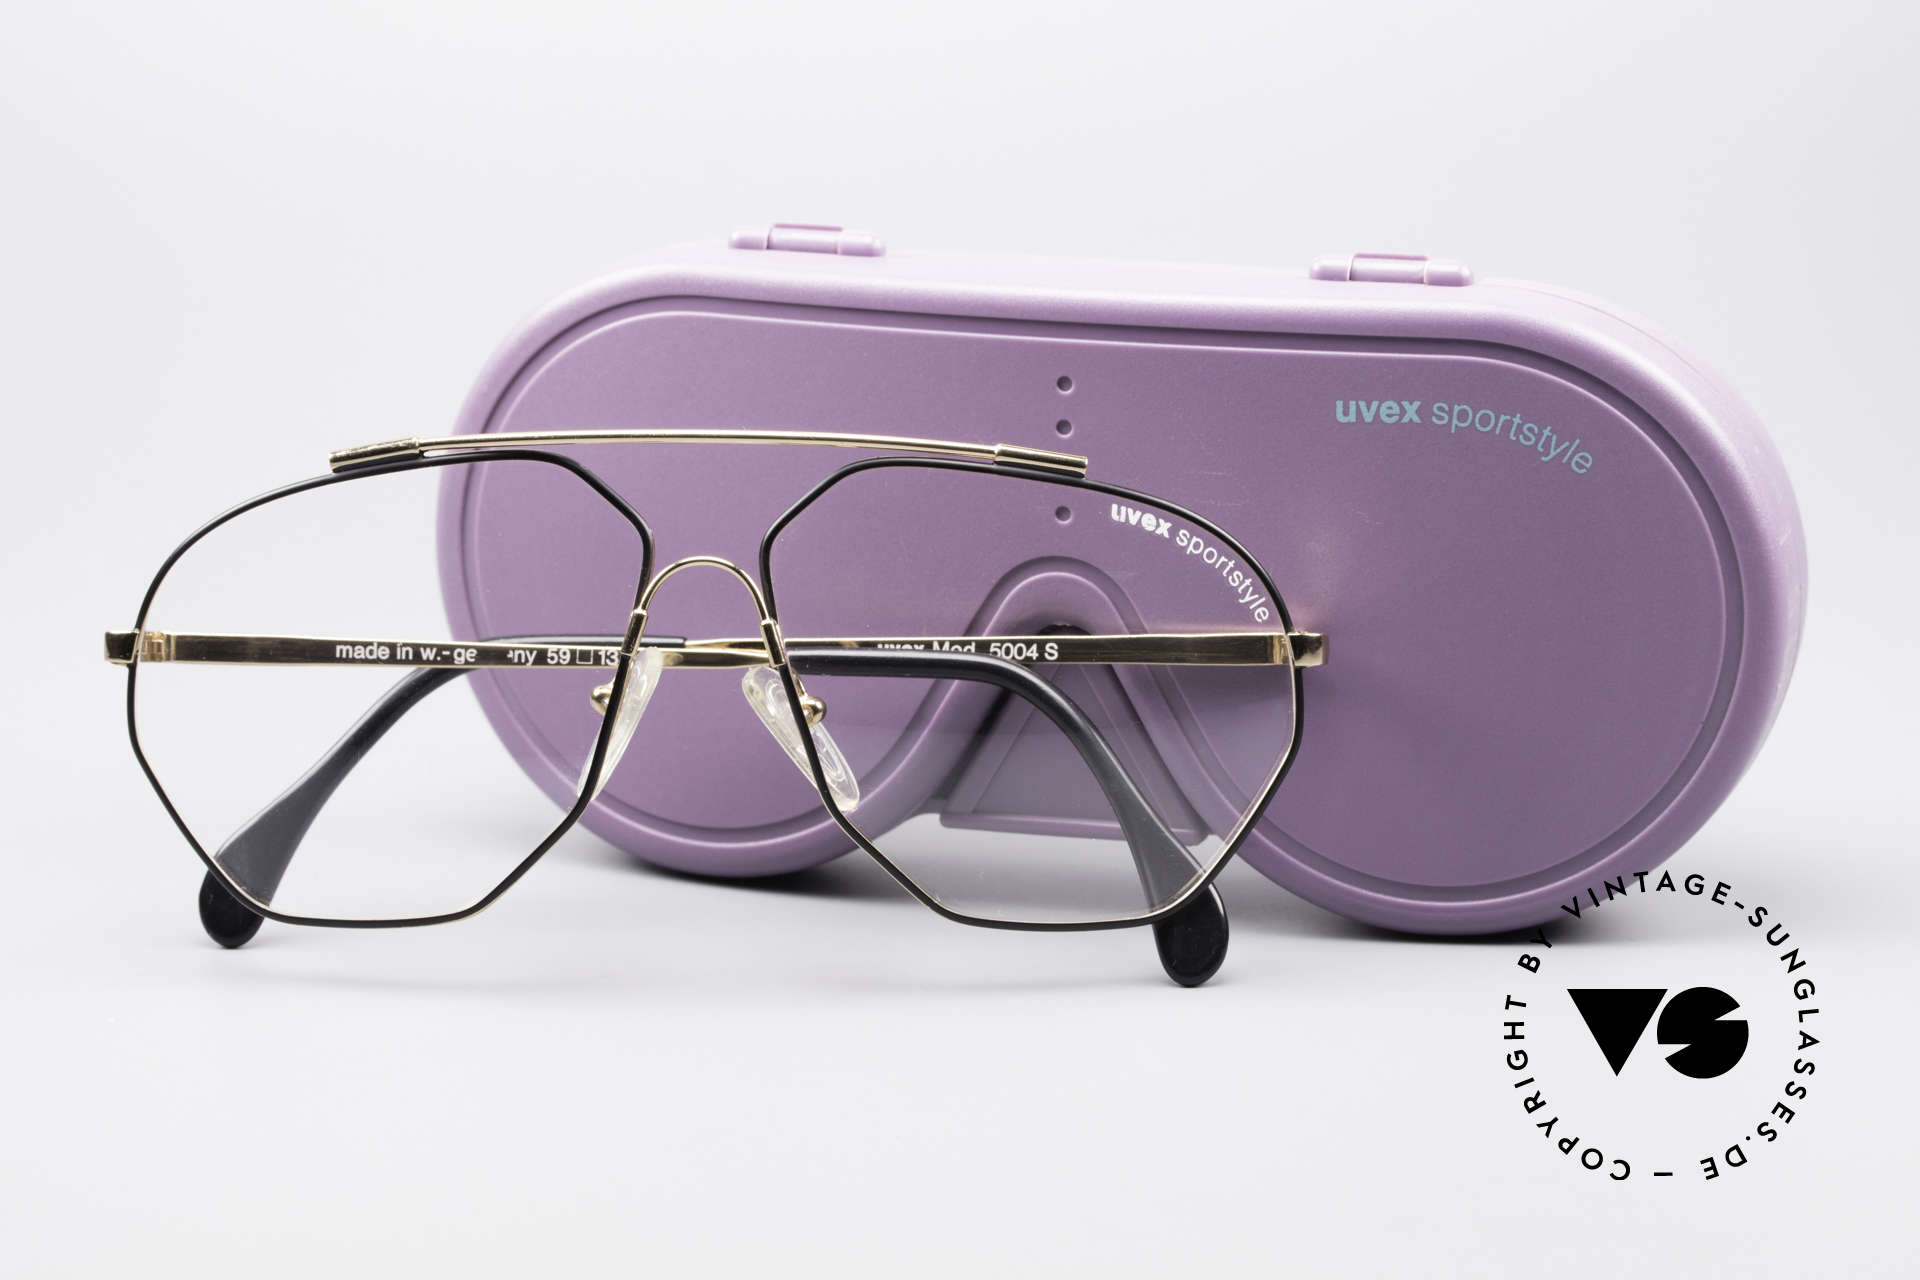 Uvex 5004 Extraordinary Aviator Frame, demo lenses should be replaced with prescriptions, Made for Men